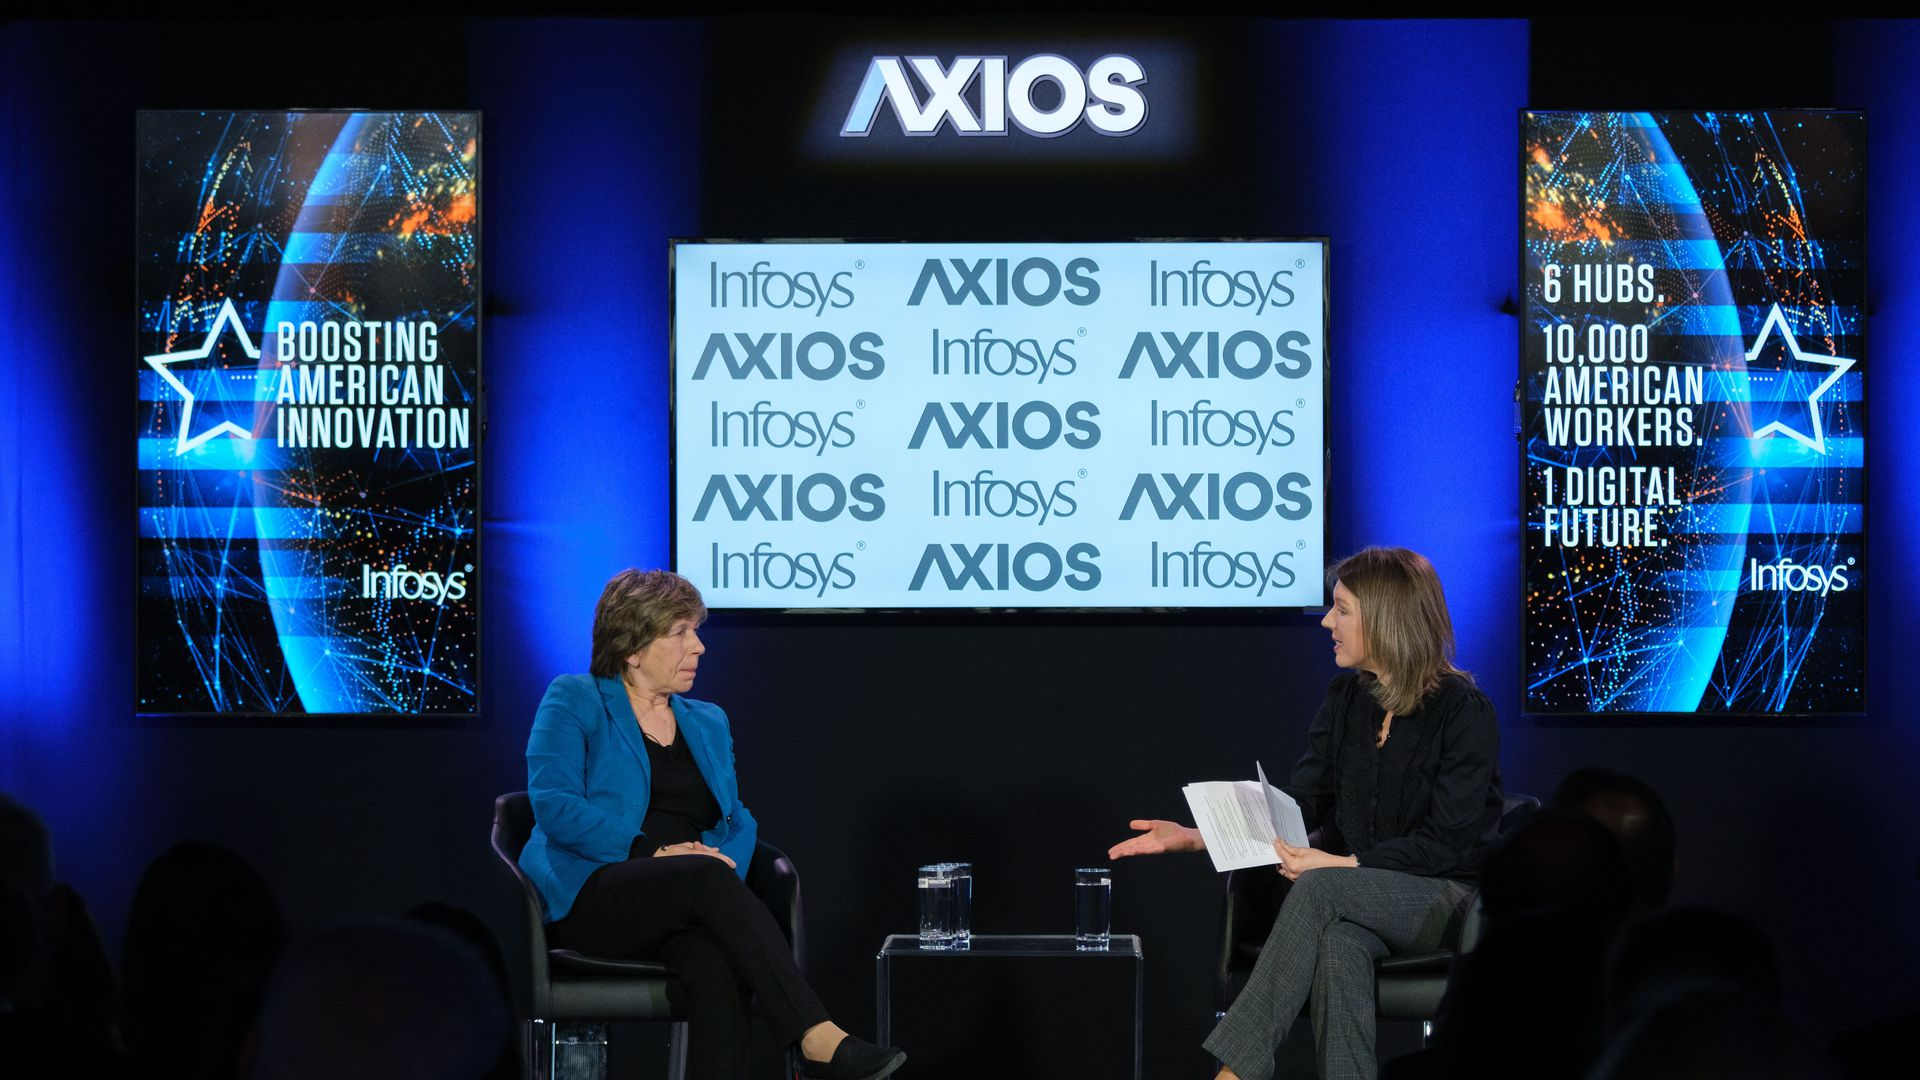 American Federation of Teachers President Randi Weingarten and Axios Managing Editor Kim Hart on the Axios stage